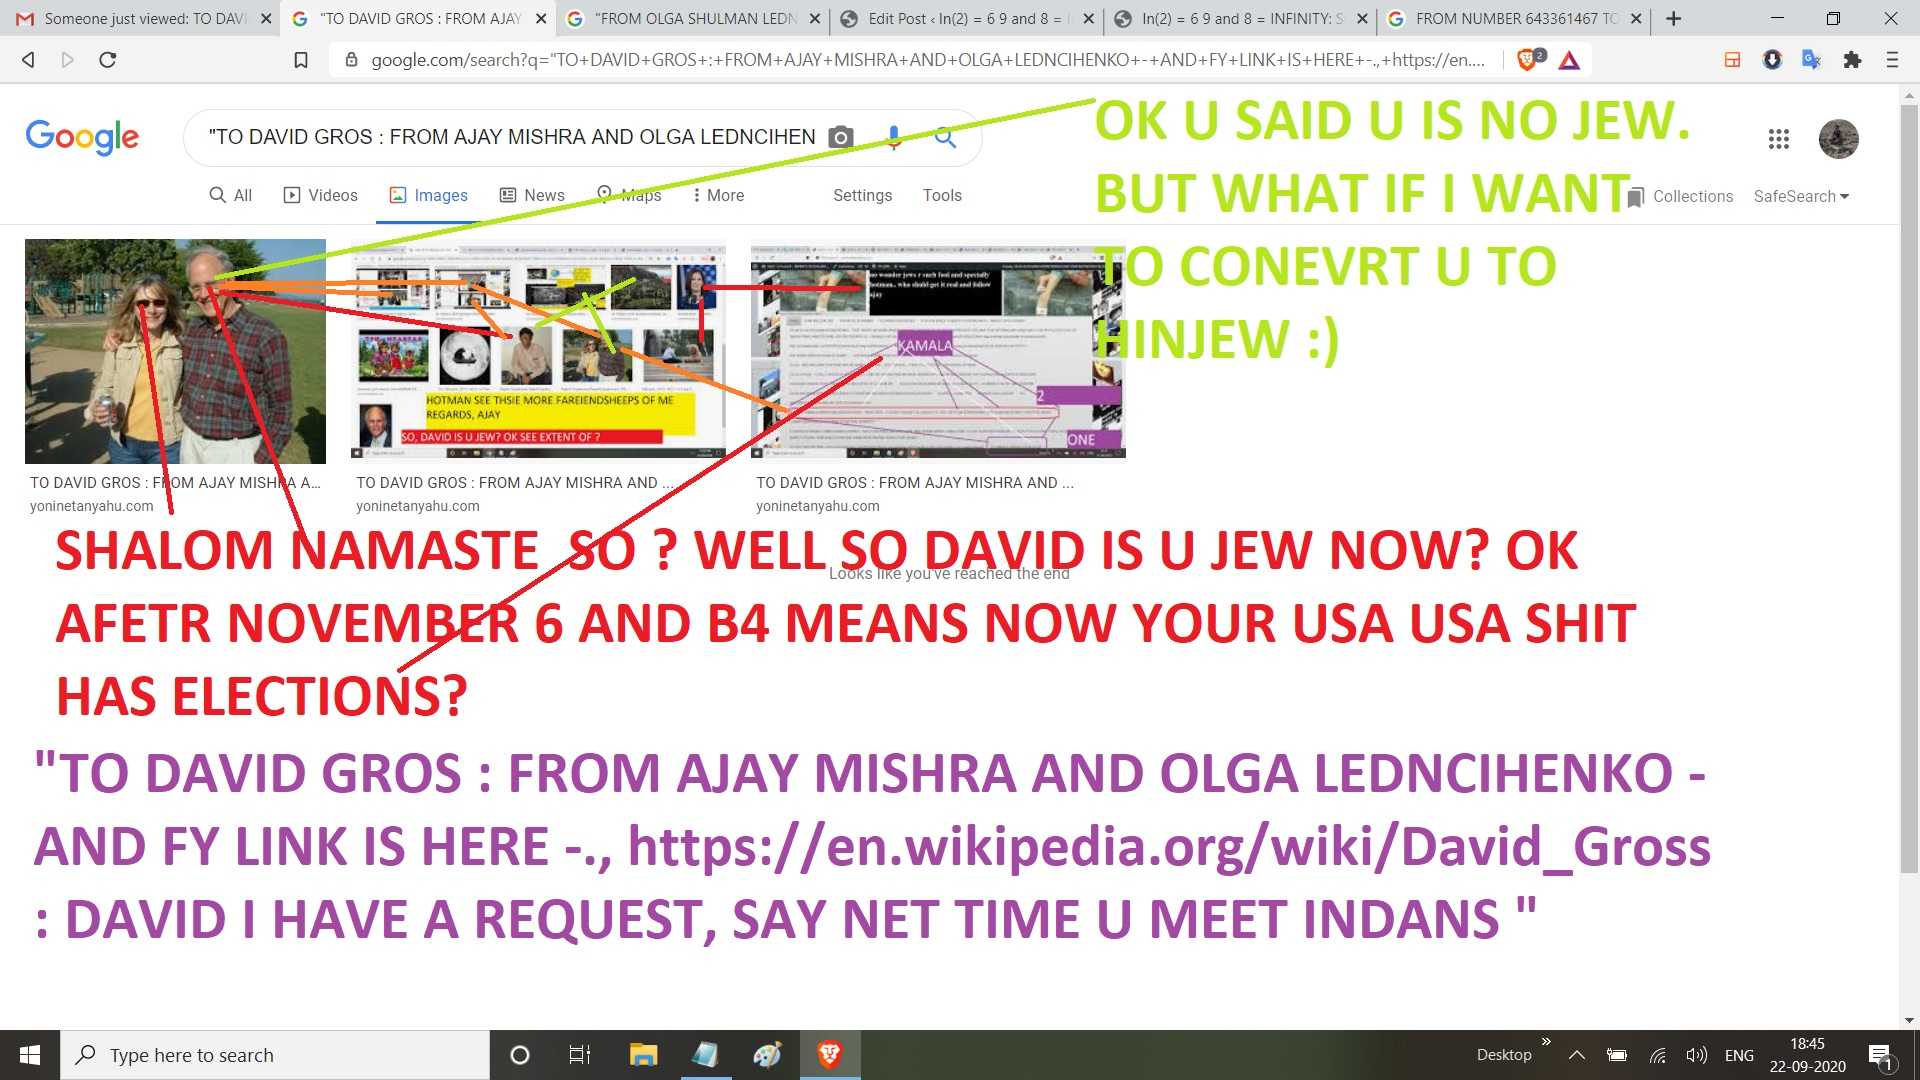 """""""TO DAVID GROS : FROM AJAY MISHRA AND OLGA LEDNCIHENKO - AND FY LINK IS HERE -., https://en.wikipedia.org/wiki/David_Gross : DAVID I HAVE A REQUEST, SAY NET TIME U MEET INDANS """""""